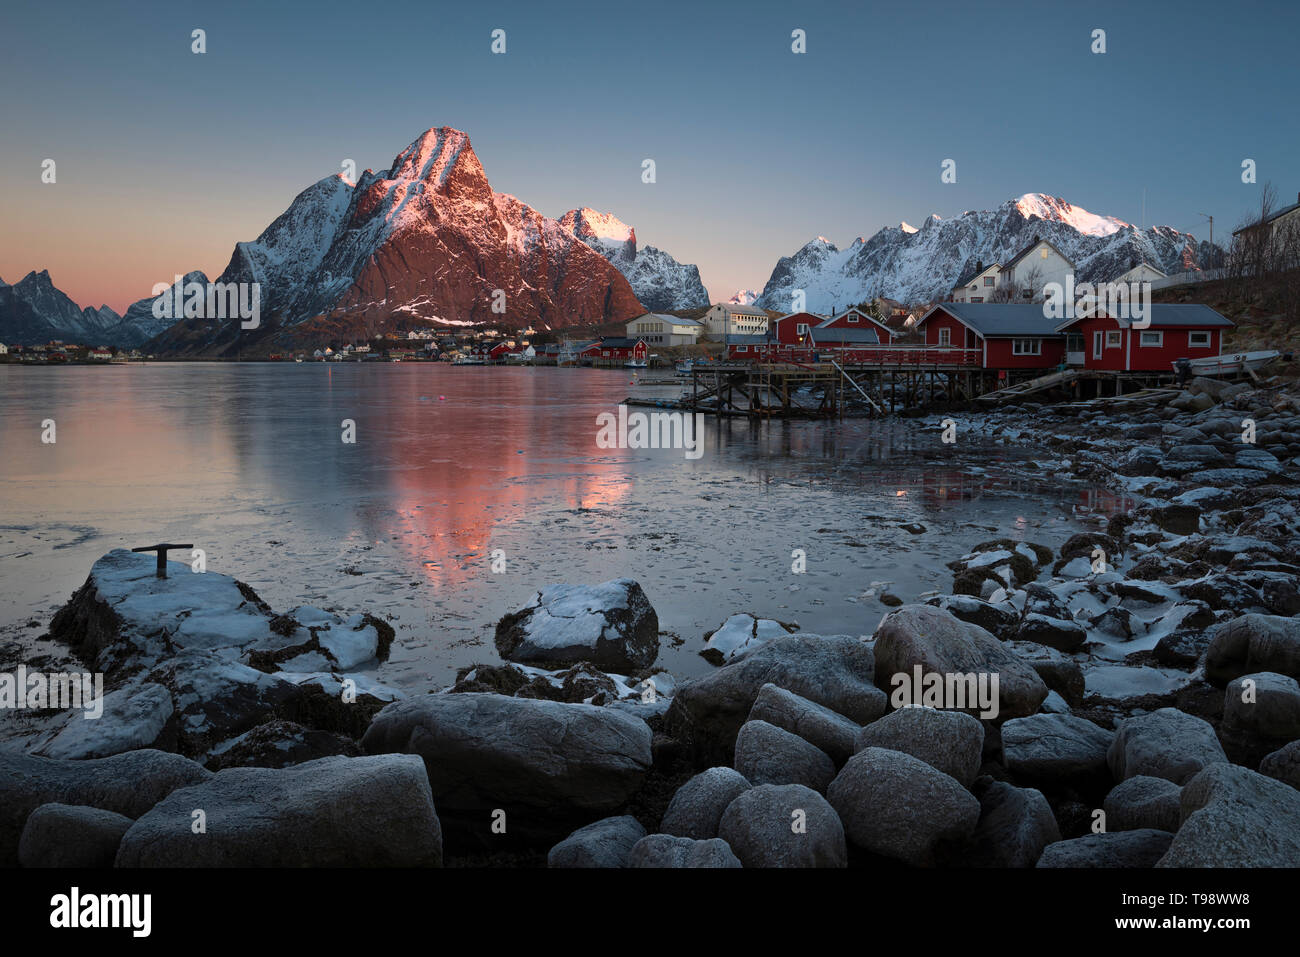 Morning light illuminates the snow-covered Olstinden in the fishing village Reine, Reine, Nordland, Norway Stock Photo